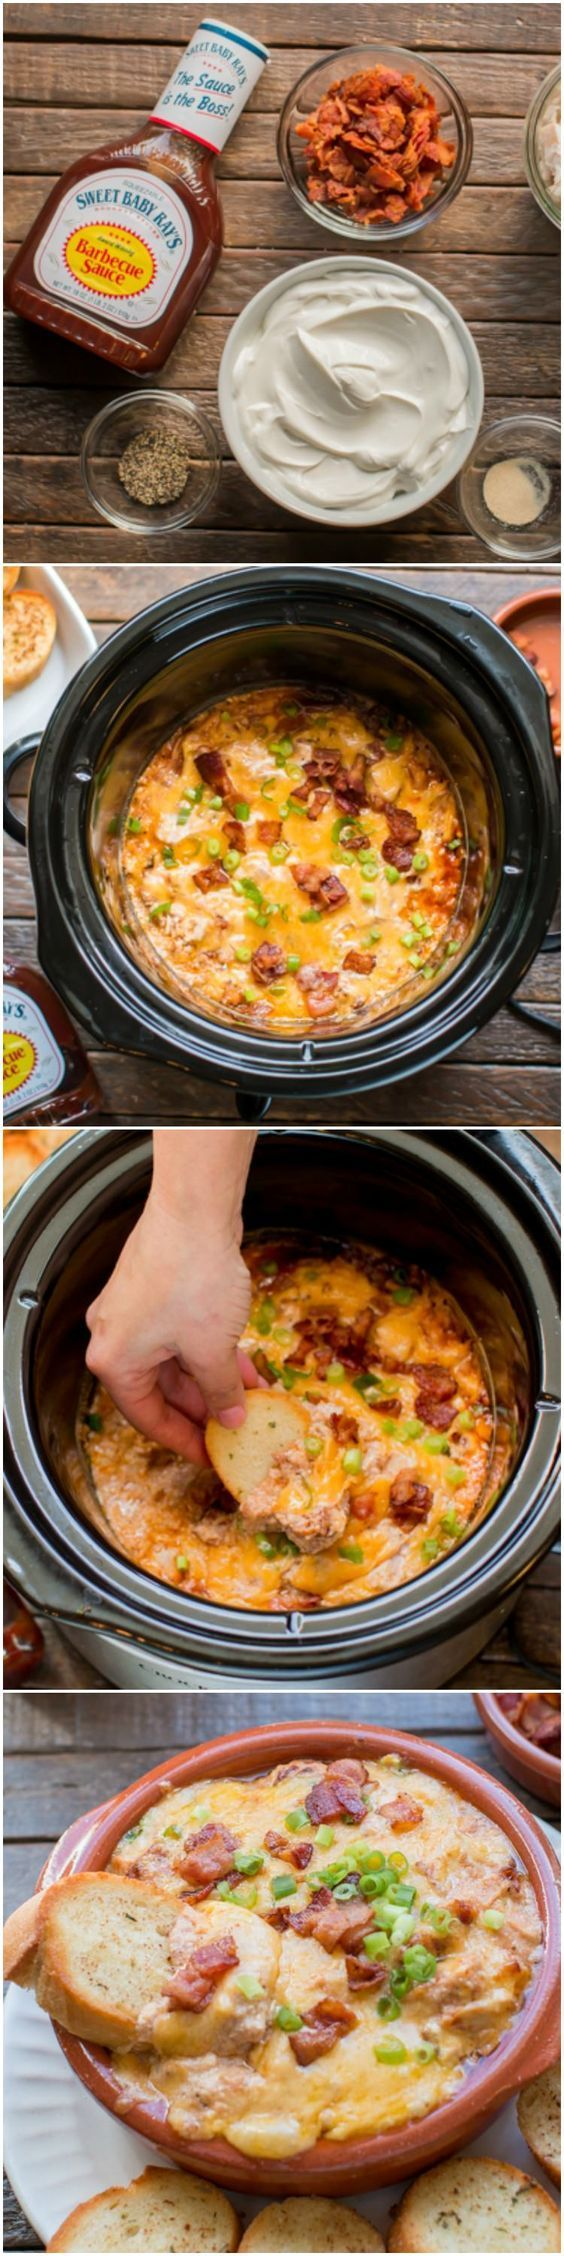 Slow Cooker Bacon Barbecue Chicken Dip. Made with @sbrbbq sauce. #AD